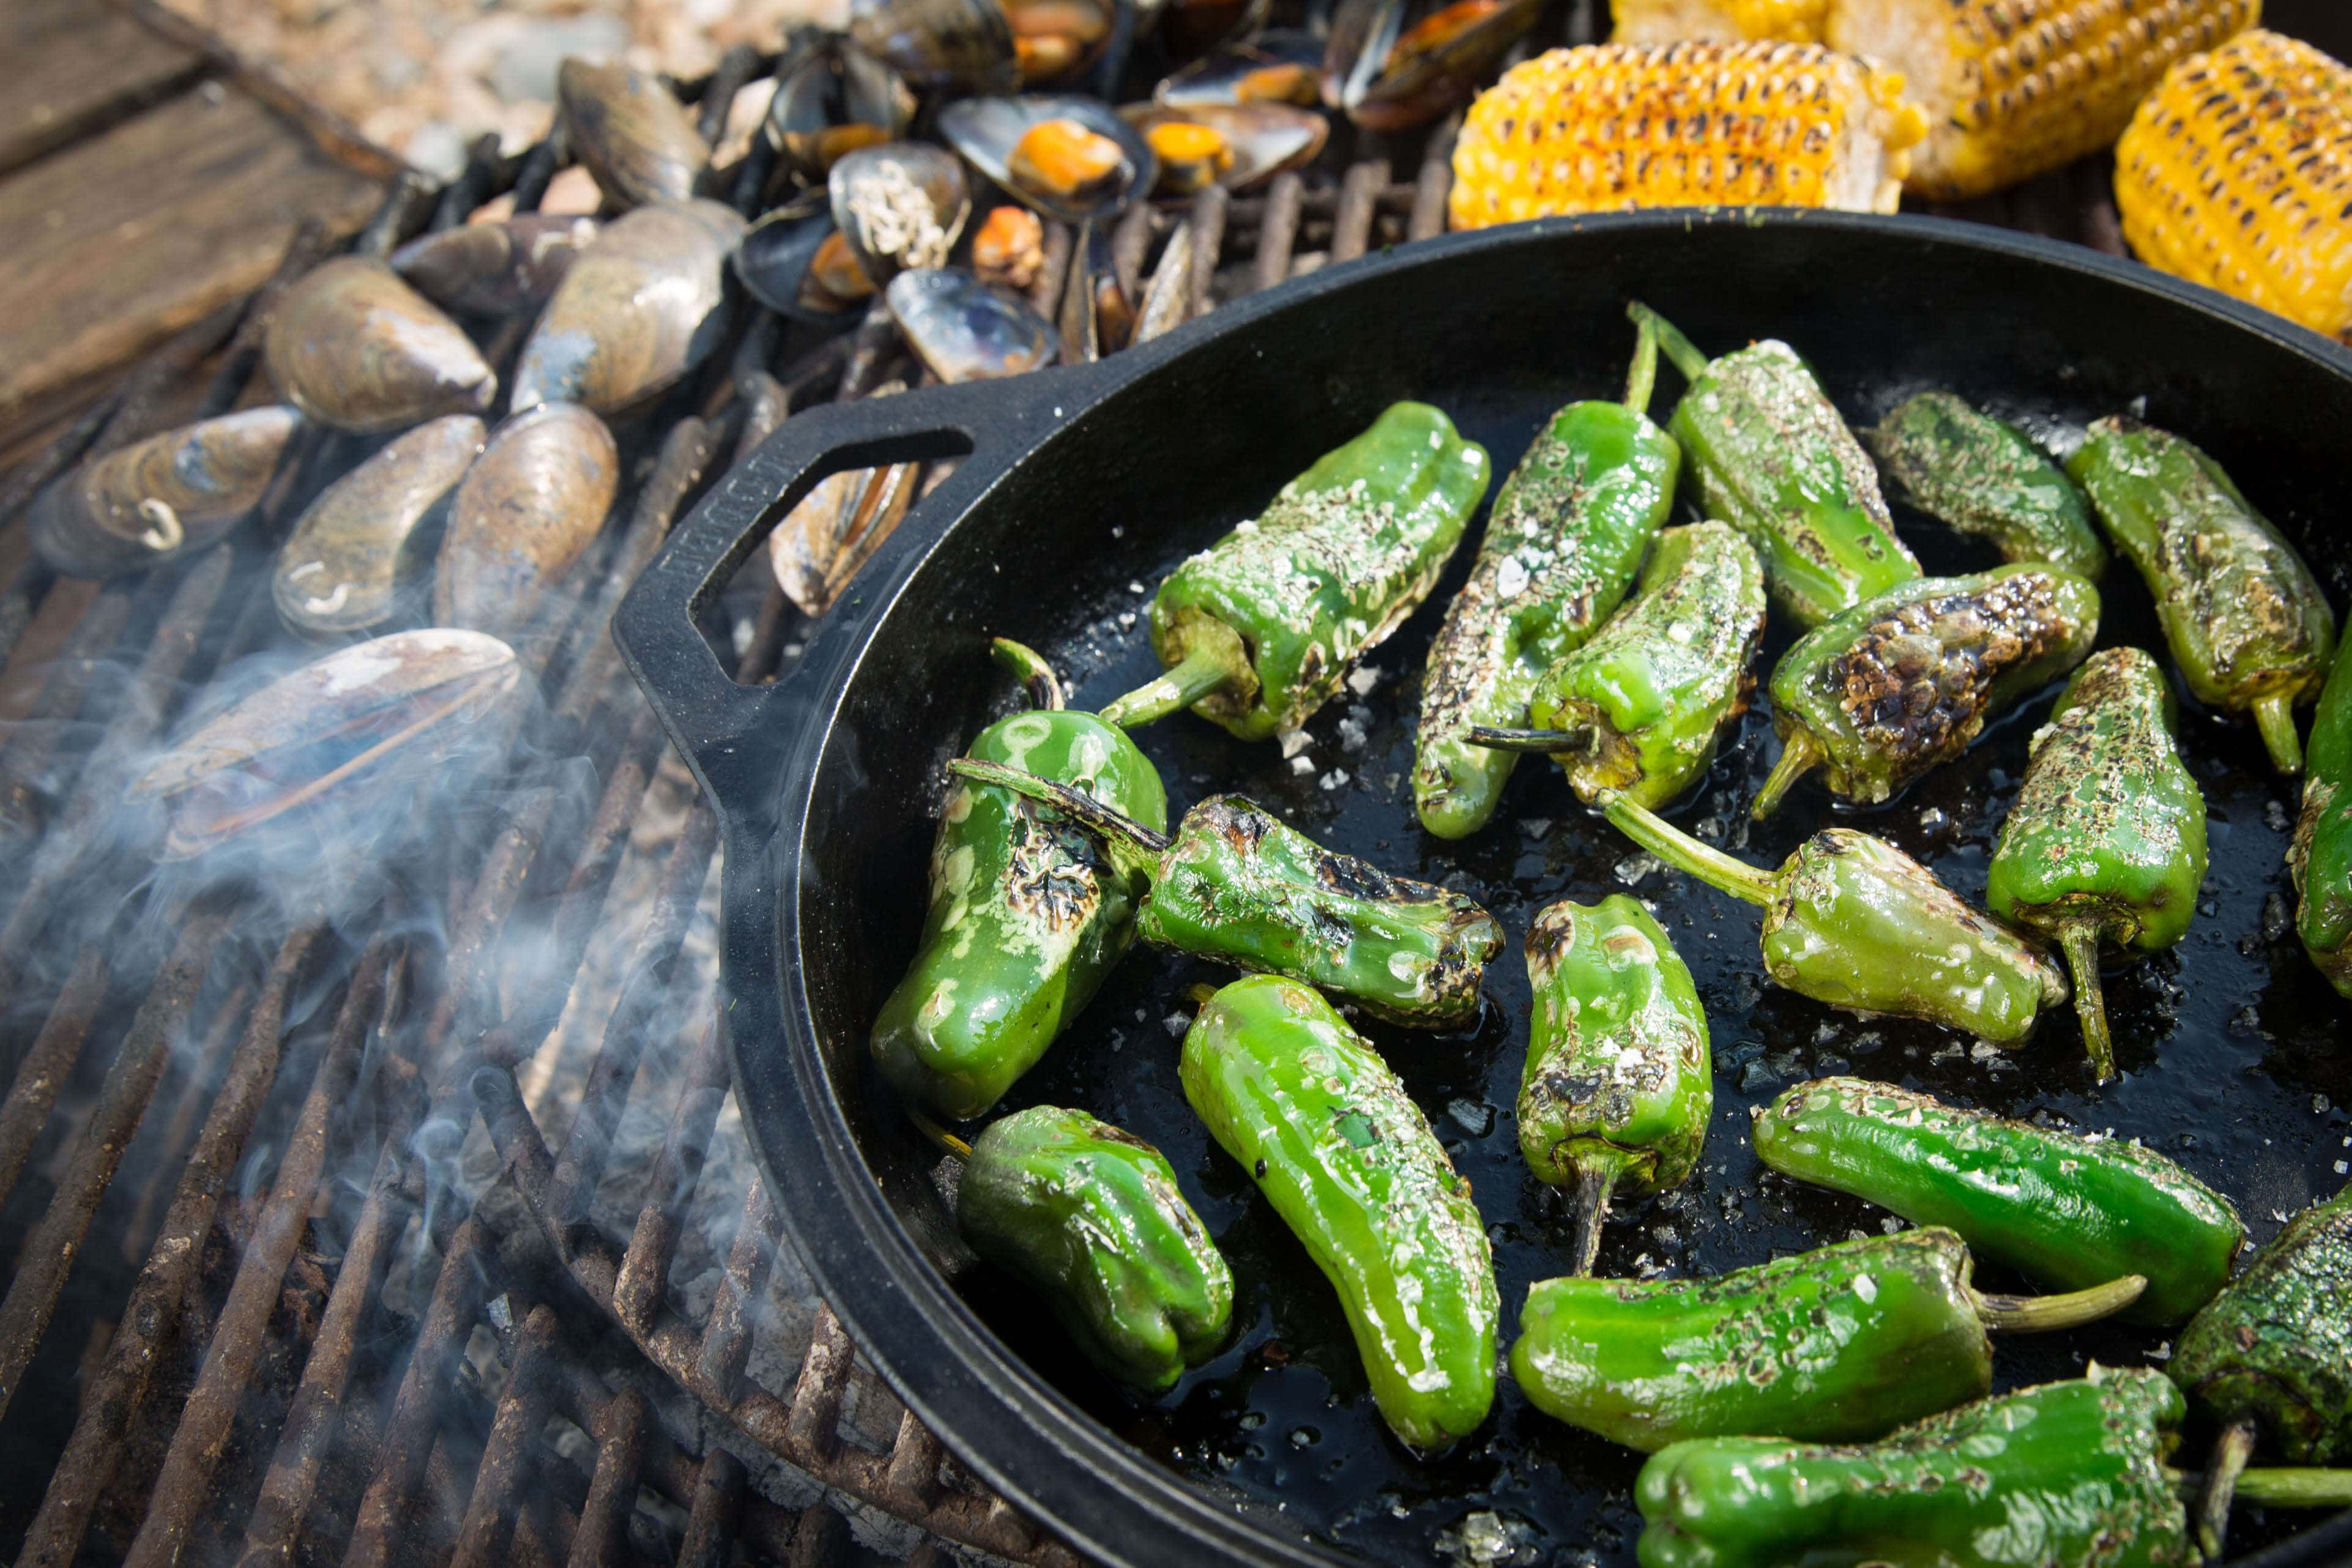 Mussels, corn and peppers cooking on the bbq.